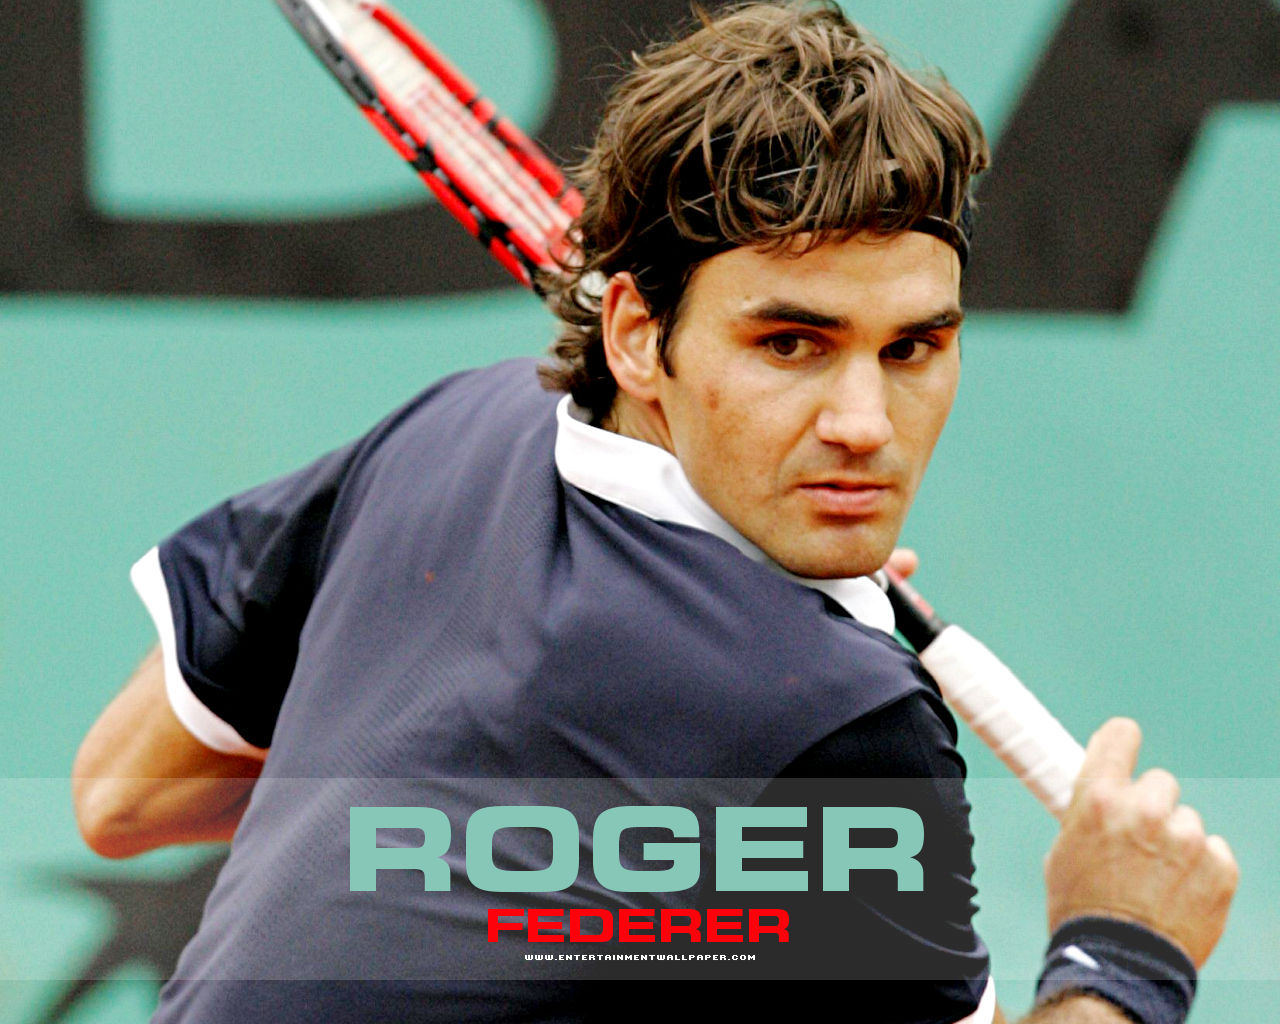 Roger Federer wallpaper 2011 | Its About All Types Of Sports